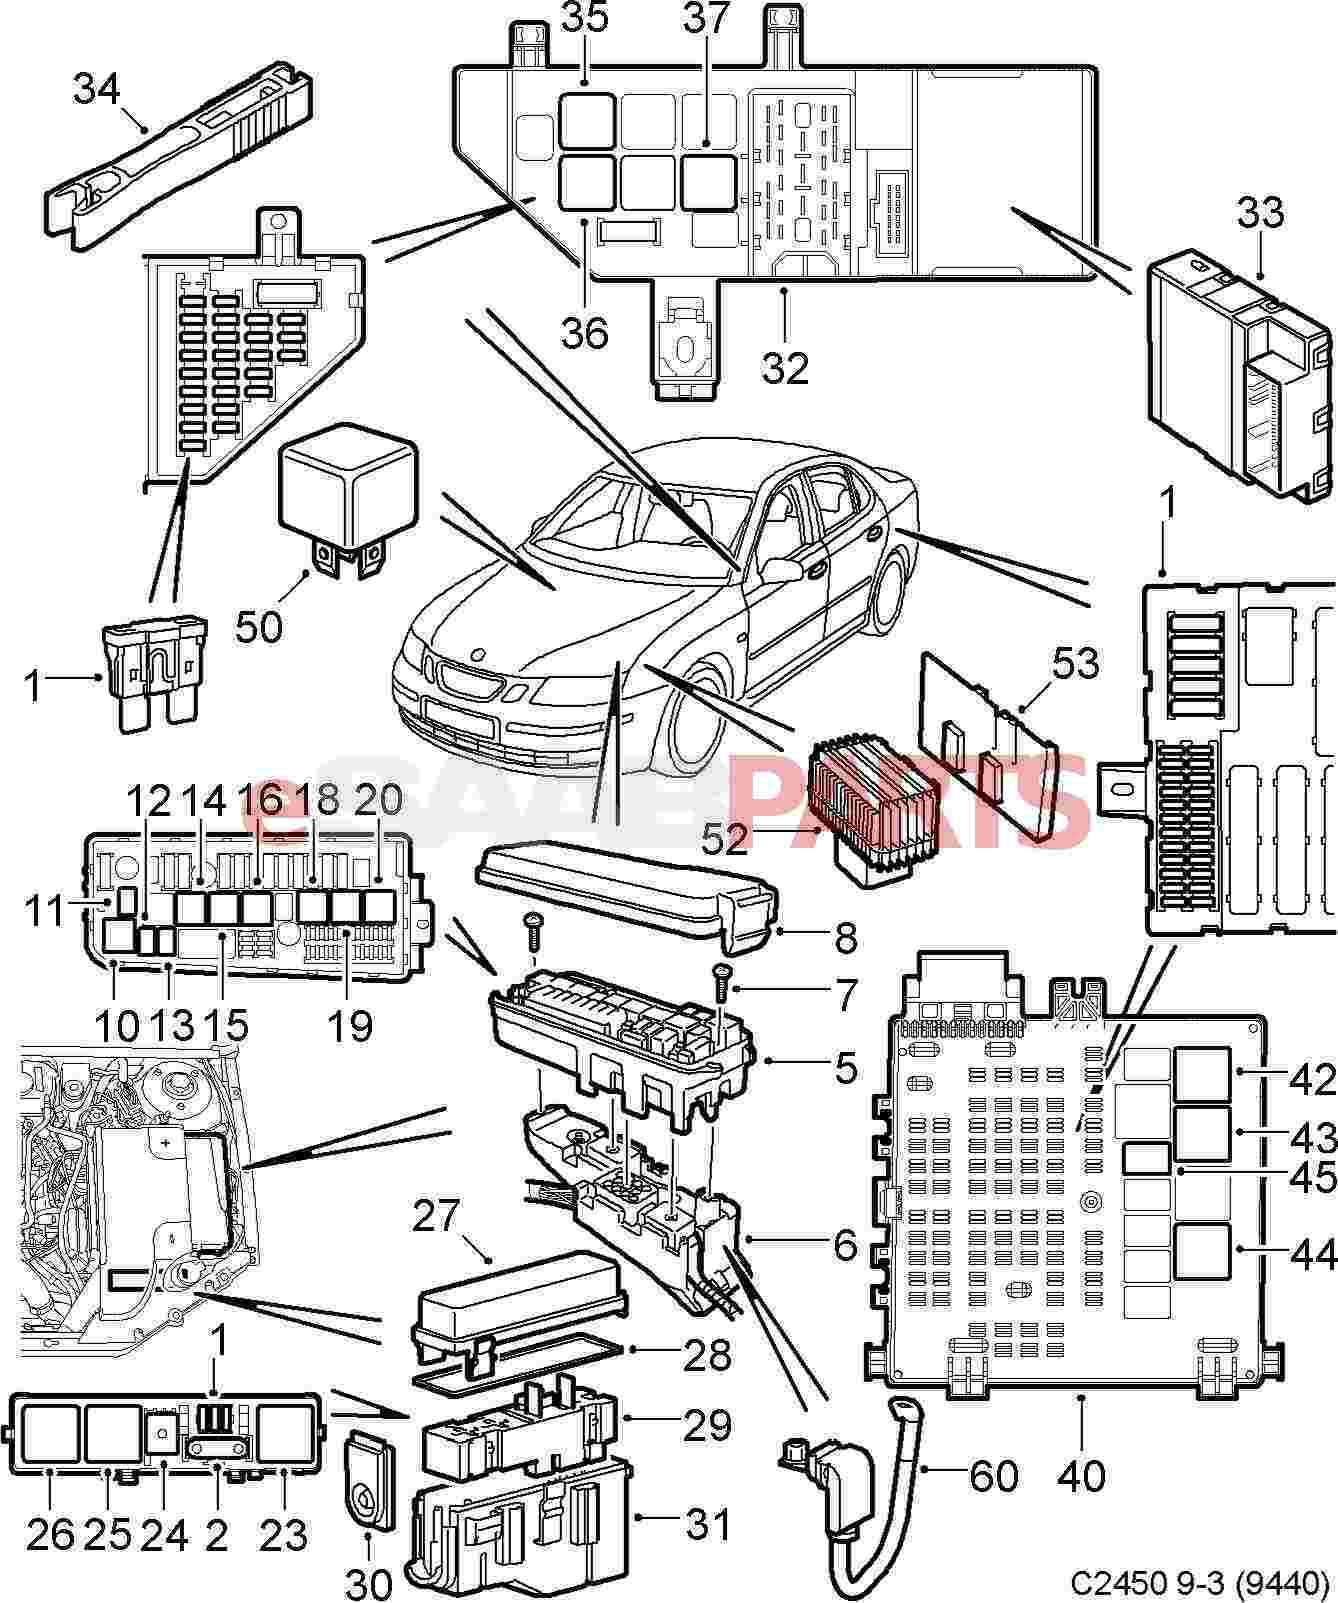 2003 saab 93 fuse box diagram free download wiring 2000 mazda protege fuse box diagram free download wiring 2003 saab 9 3 headlight wiring diagram | wiring library